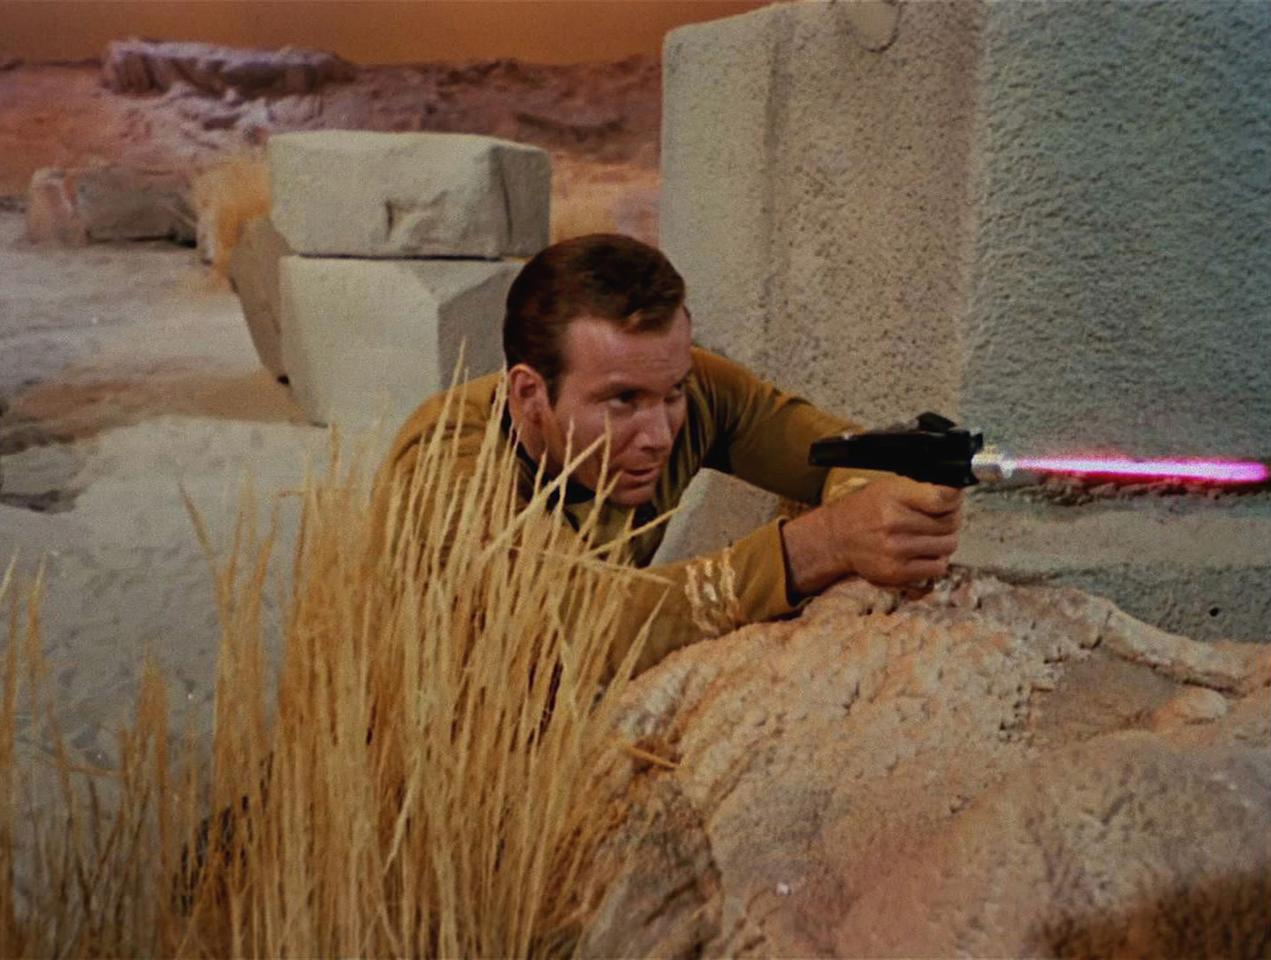 Canadian actor William Shatner as Captain James T. Kirk shoots a phaser in a scene from 'The Man Trap,' the premiere episode of 'Star Trek,' which aired on September 8, 1966. (Photo by CBS Photo Archive/Getty Images)